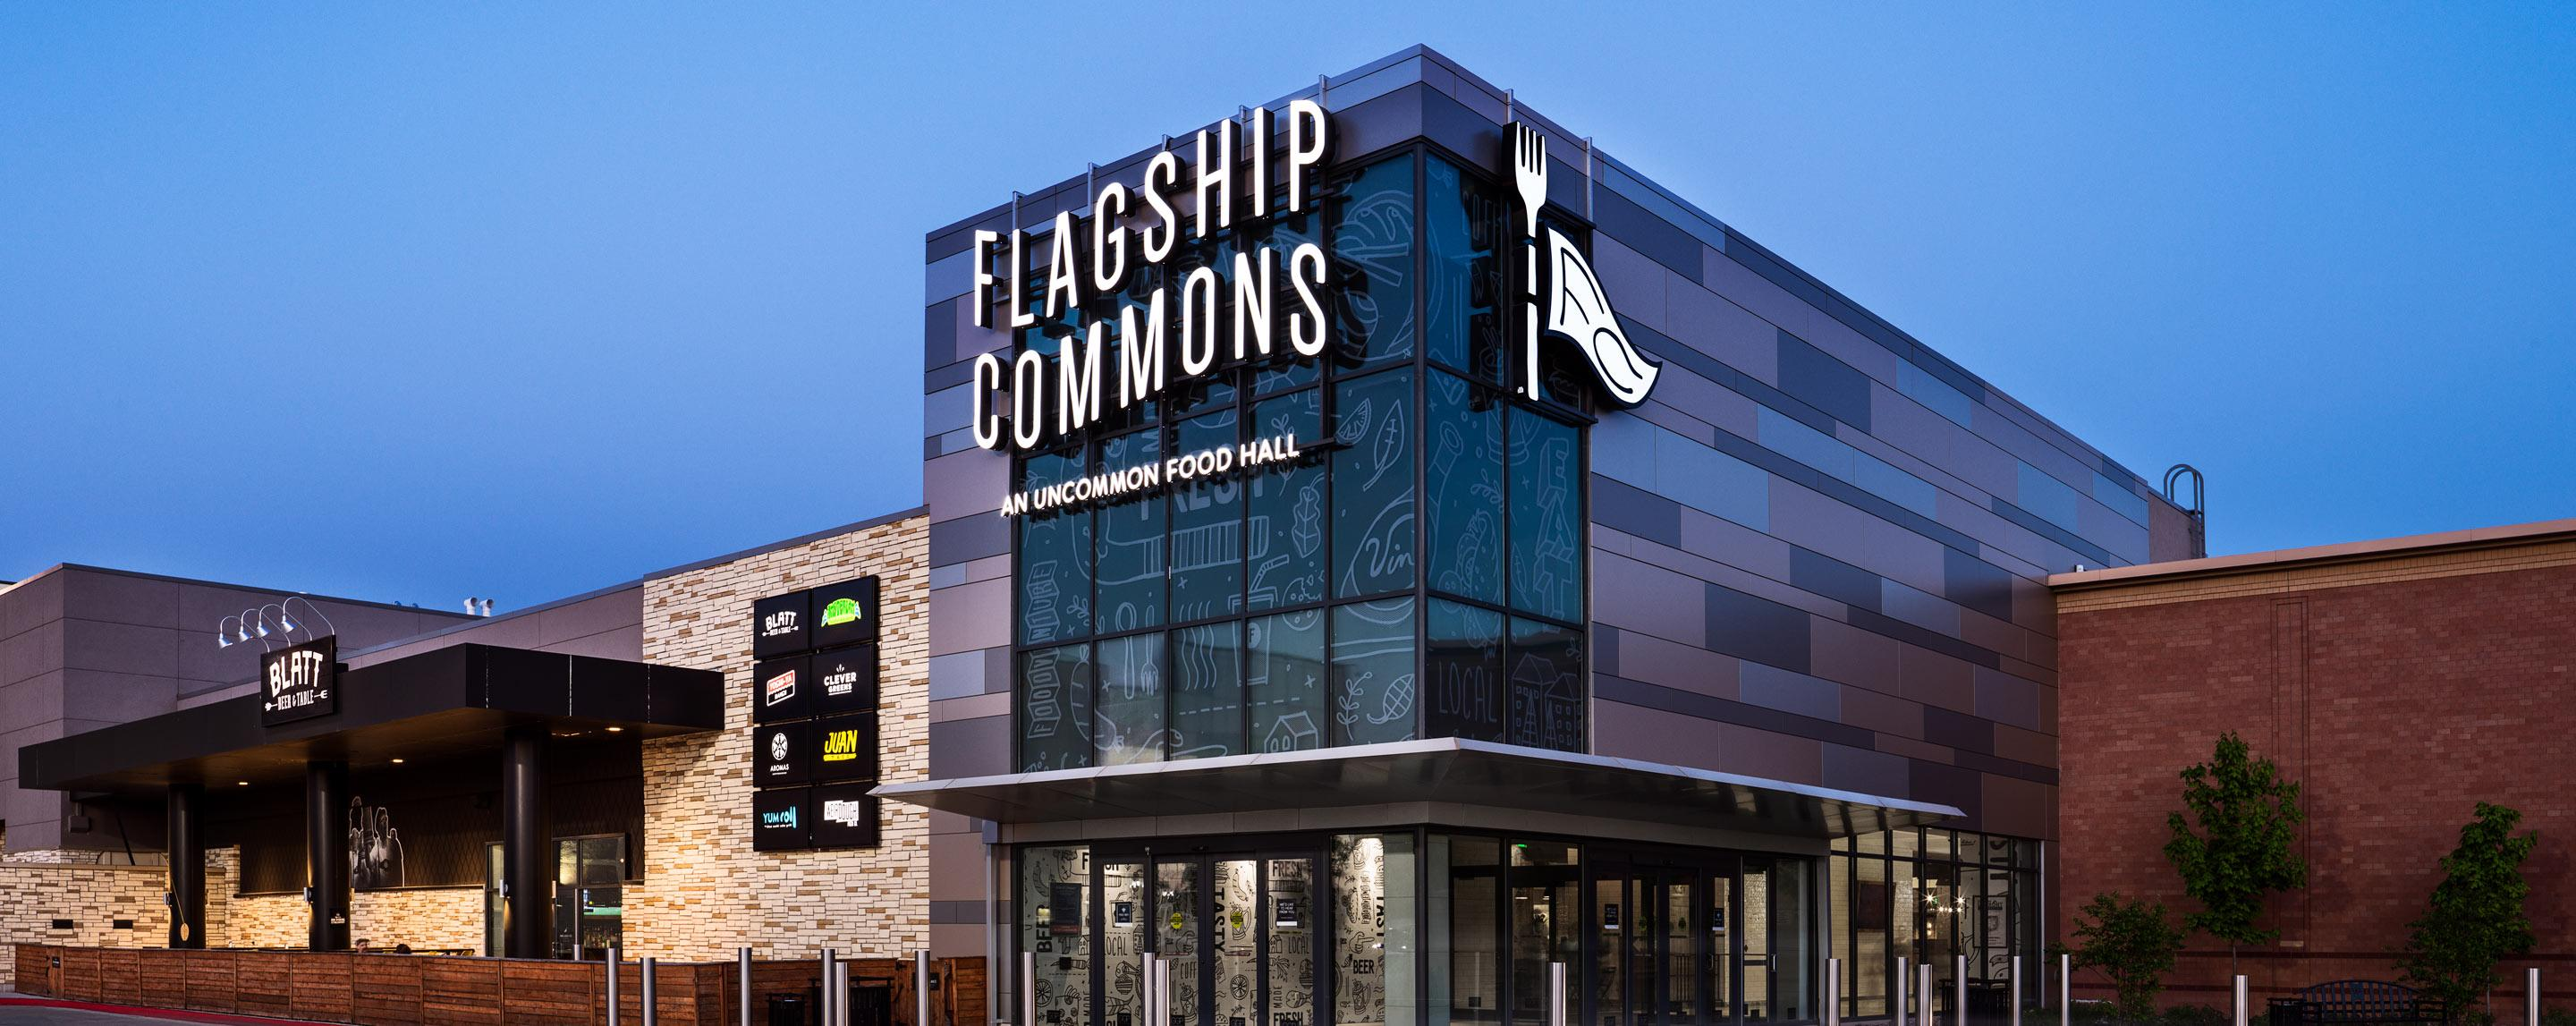 """A tall building with a face of glass windows has the words """"Flagship Commons"""" written on the front."""